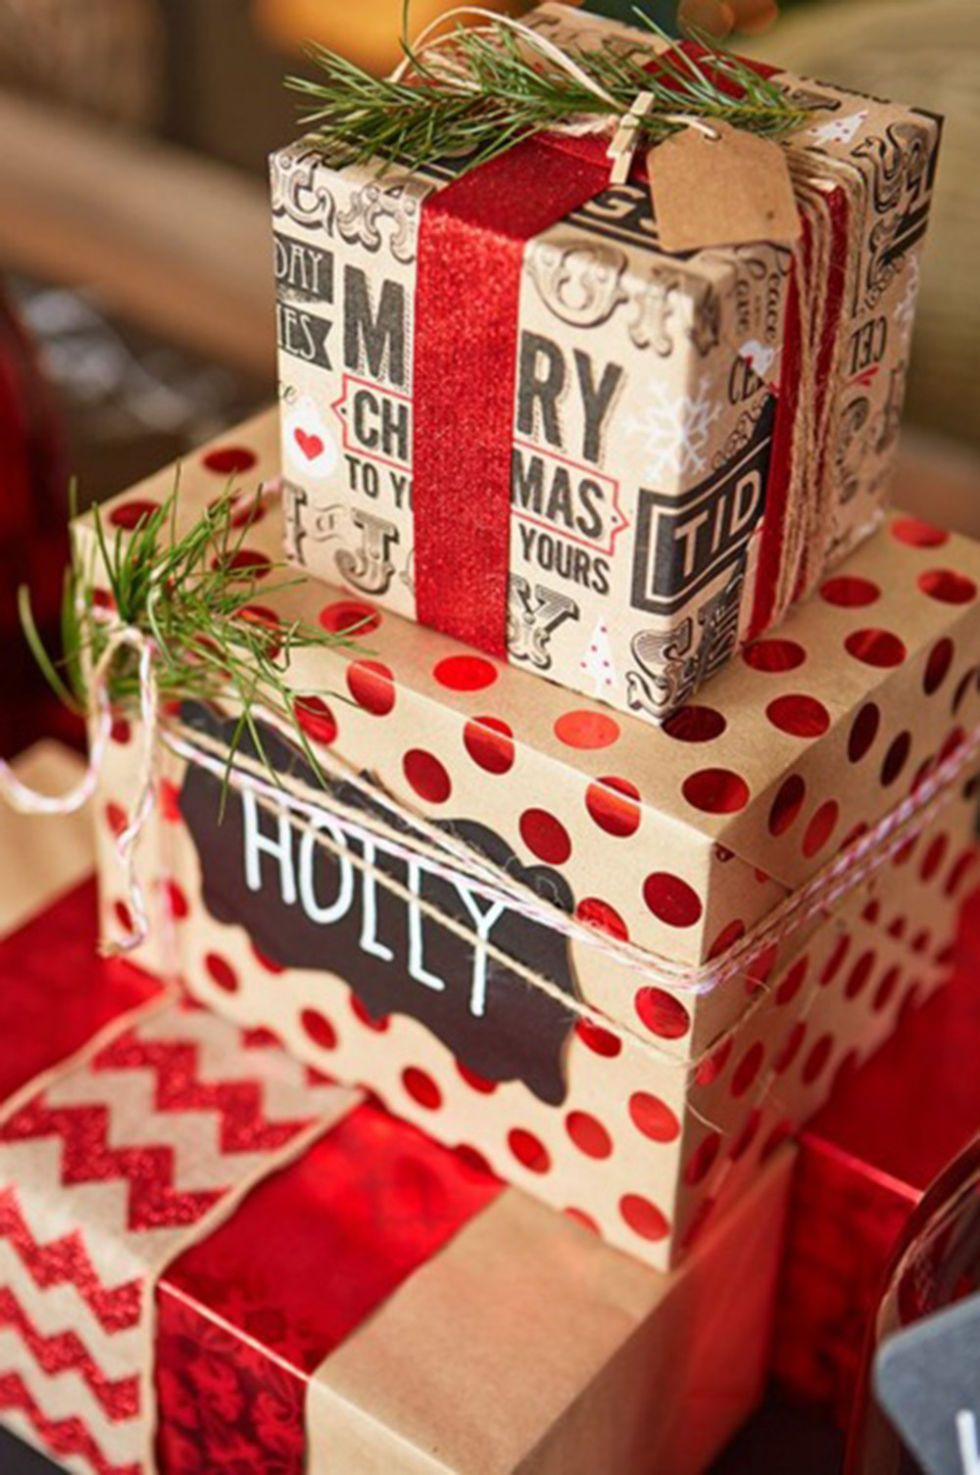 christmas gift wrap gift wrapping ideas gift wrapping present ideas pinterest & Christmas gift wrap | Gift wrapping ideas